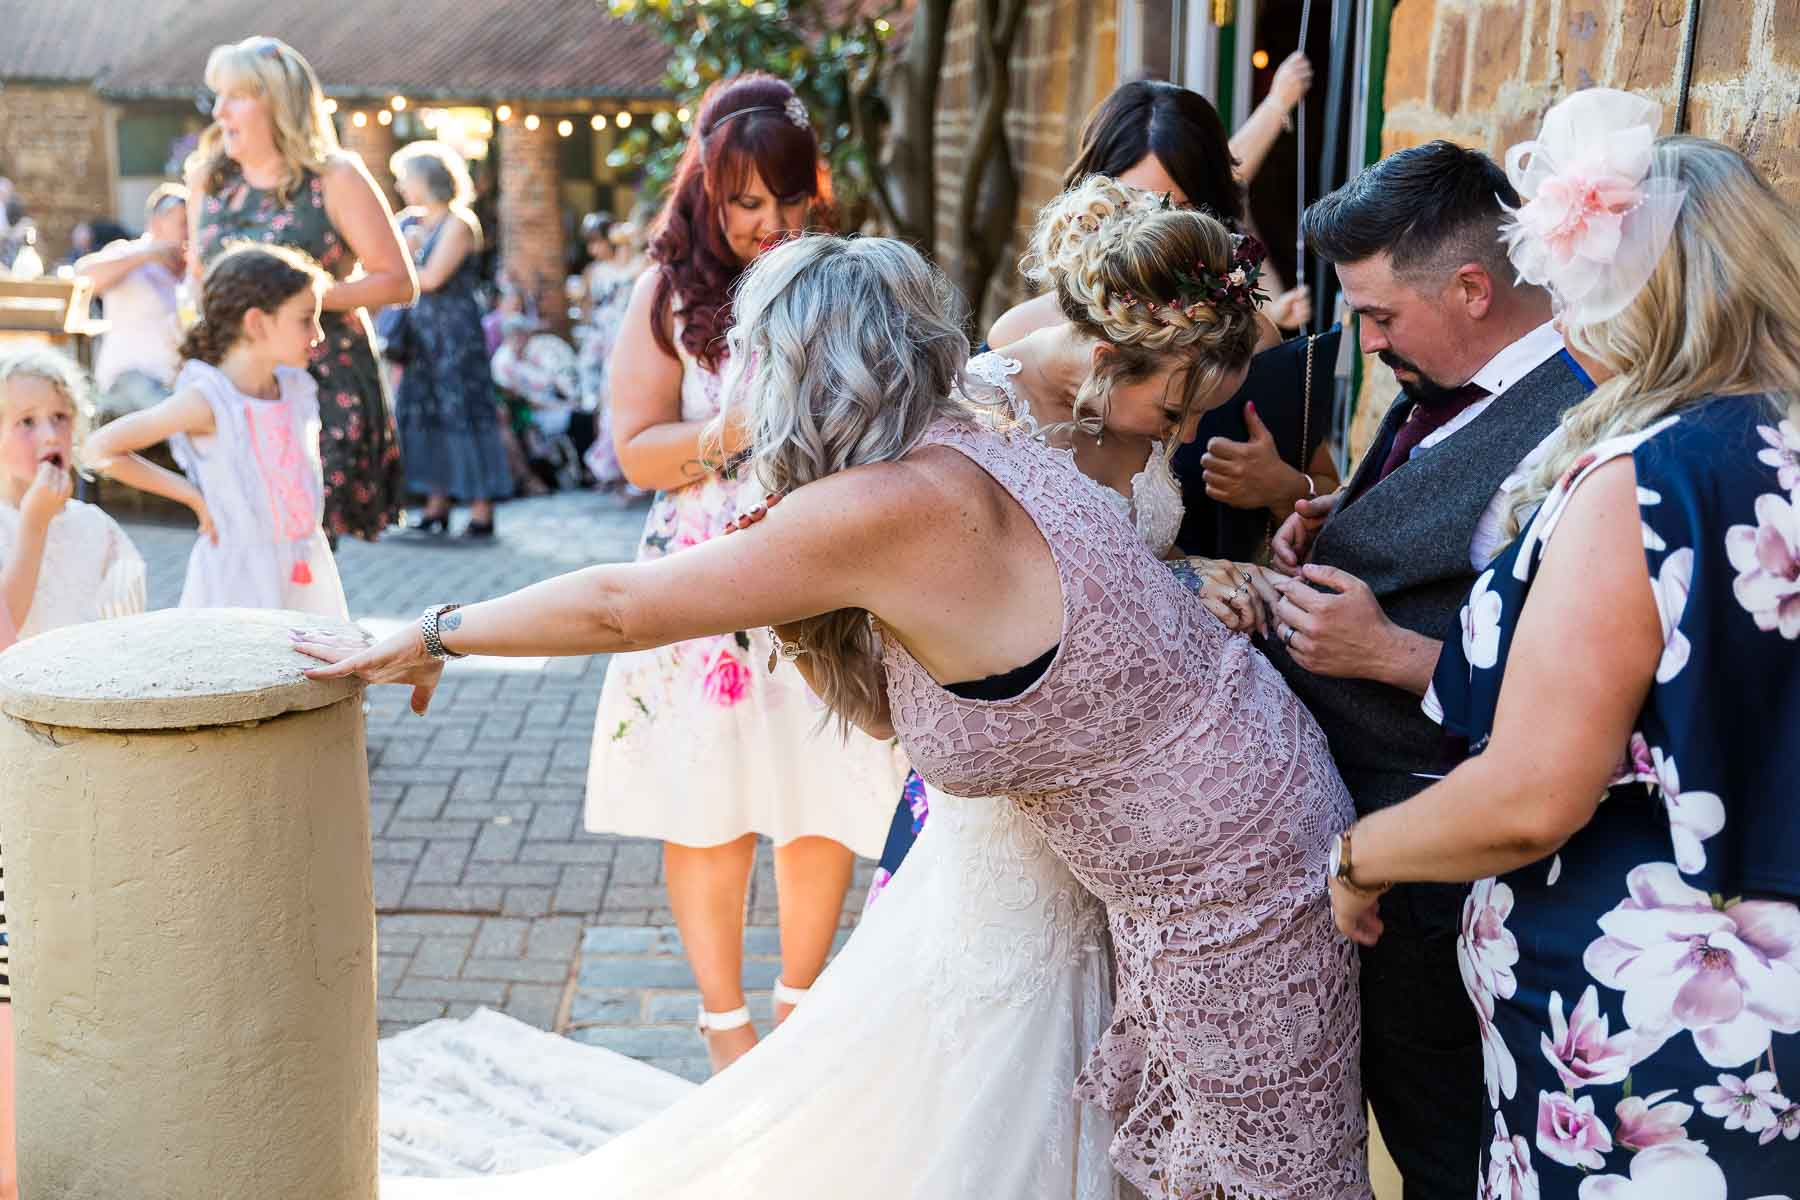 groom awkwardly getting caught up in the dress of a guest